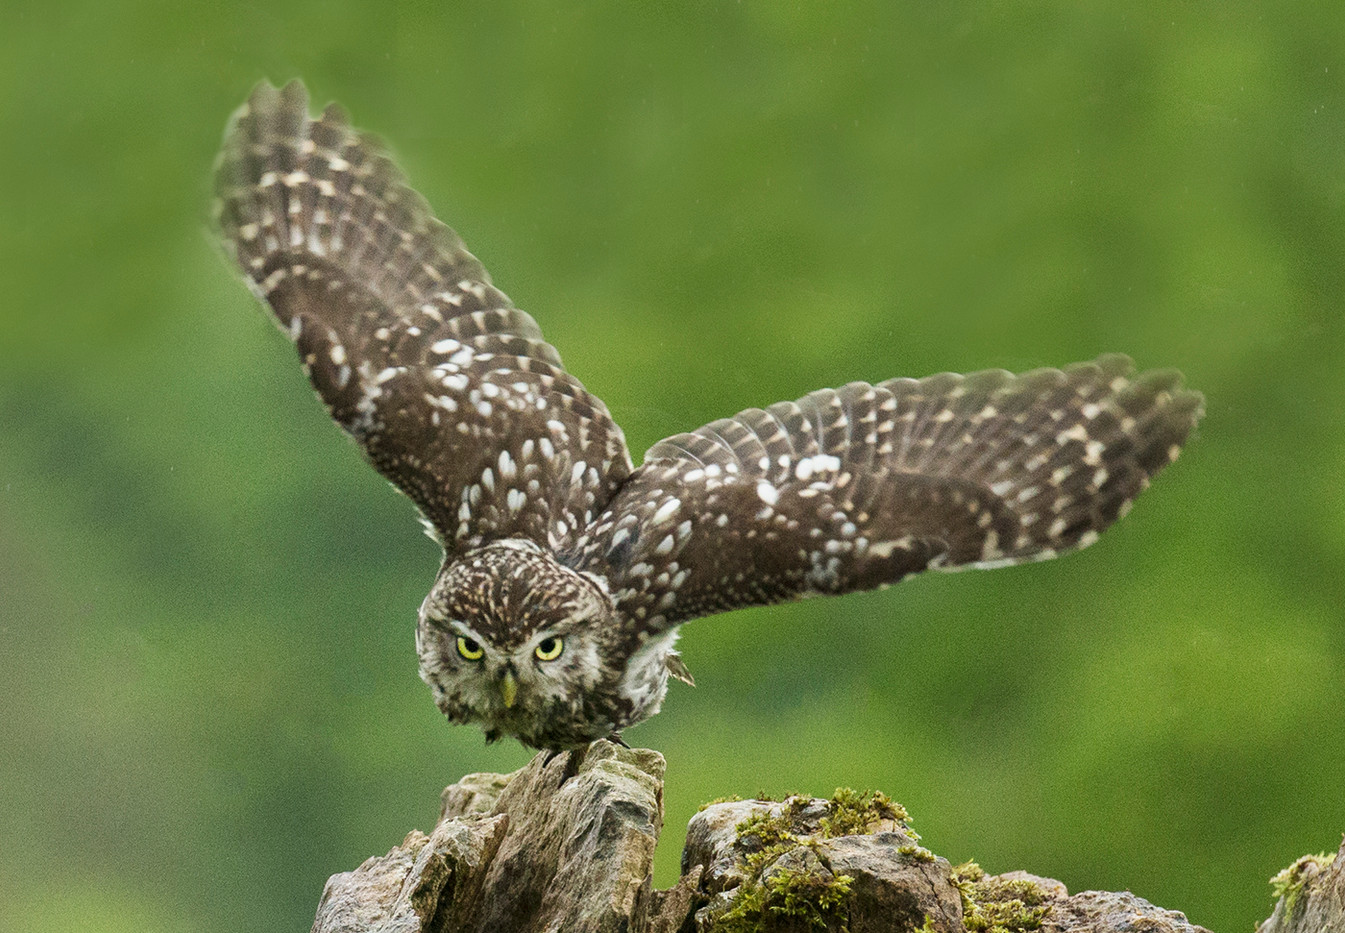 20 LITTLE OWL EYES ITS PREY by John Hunt